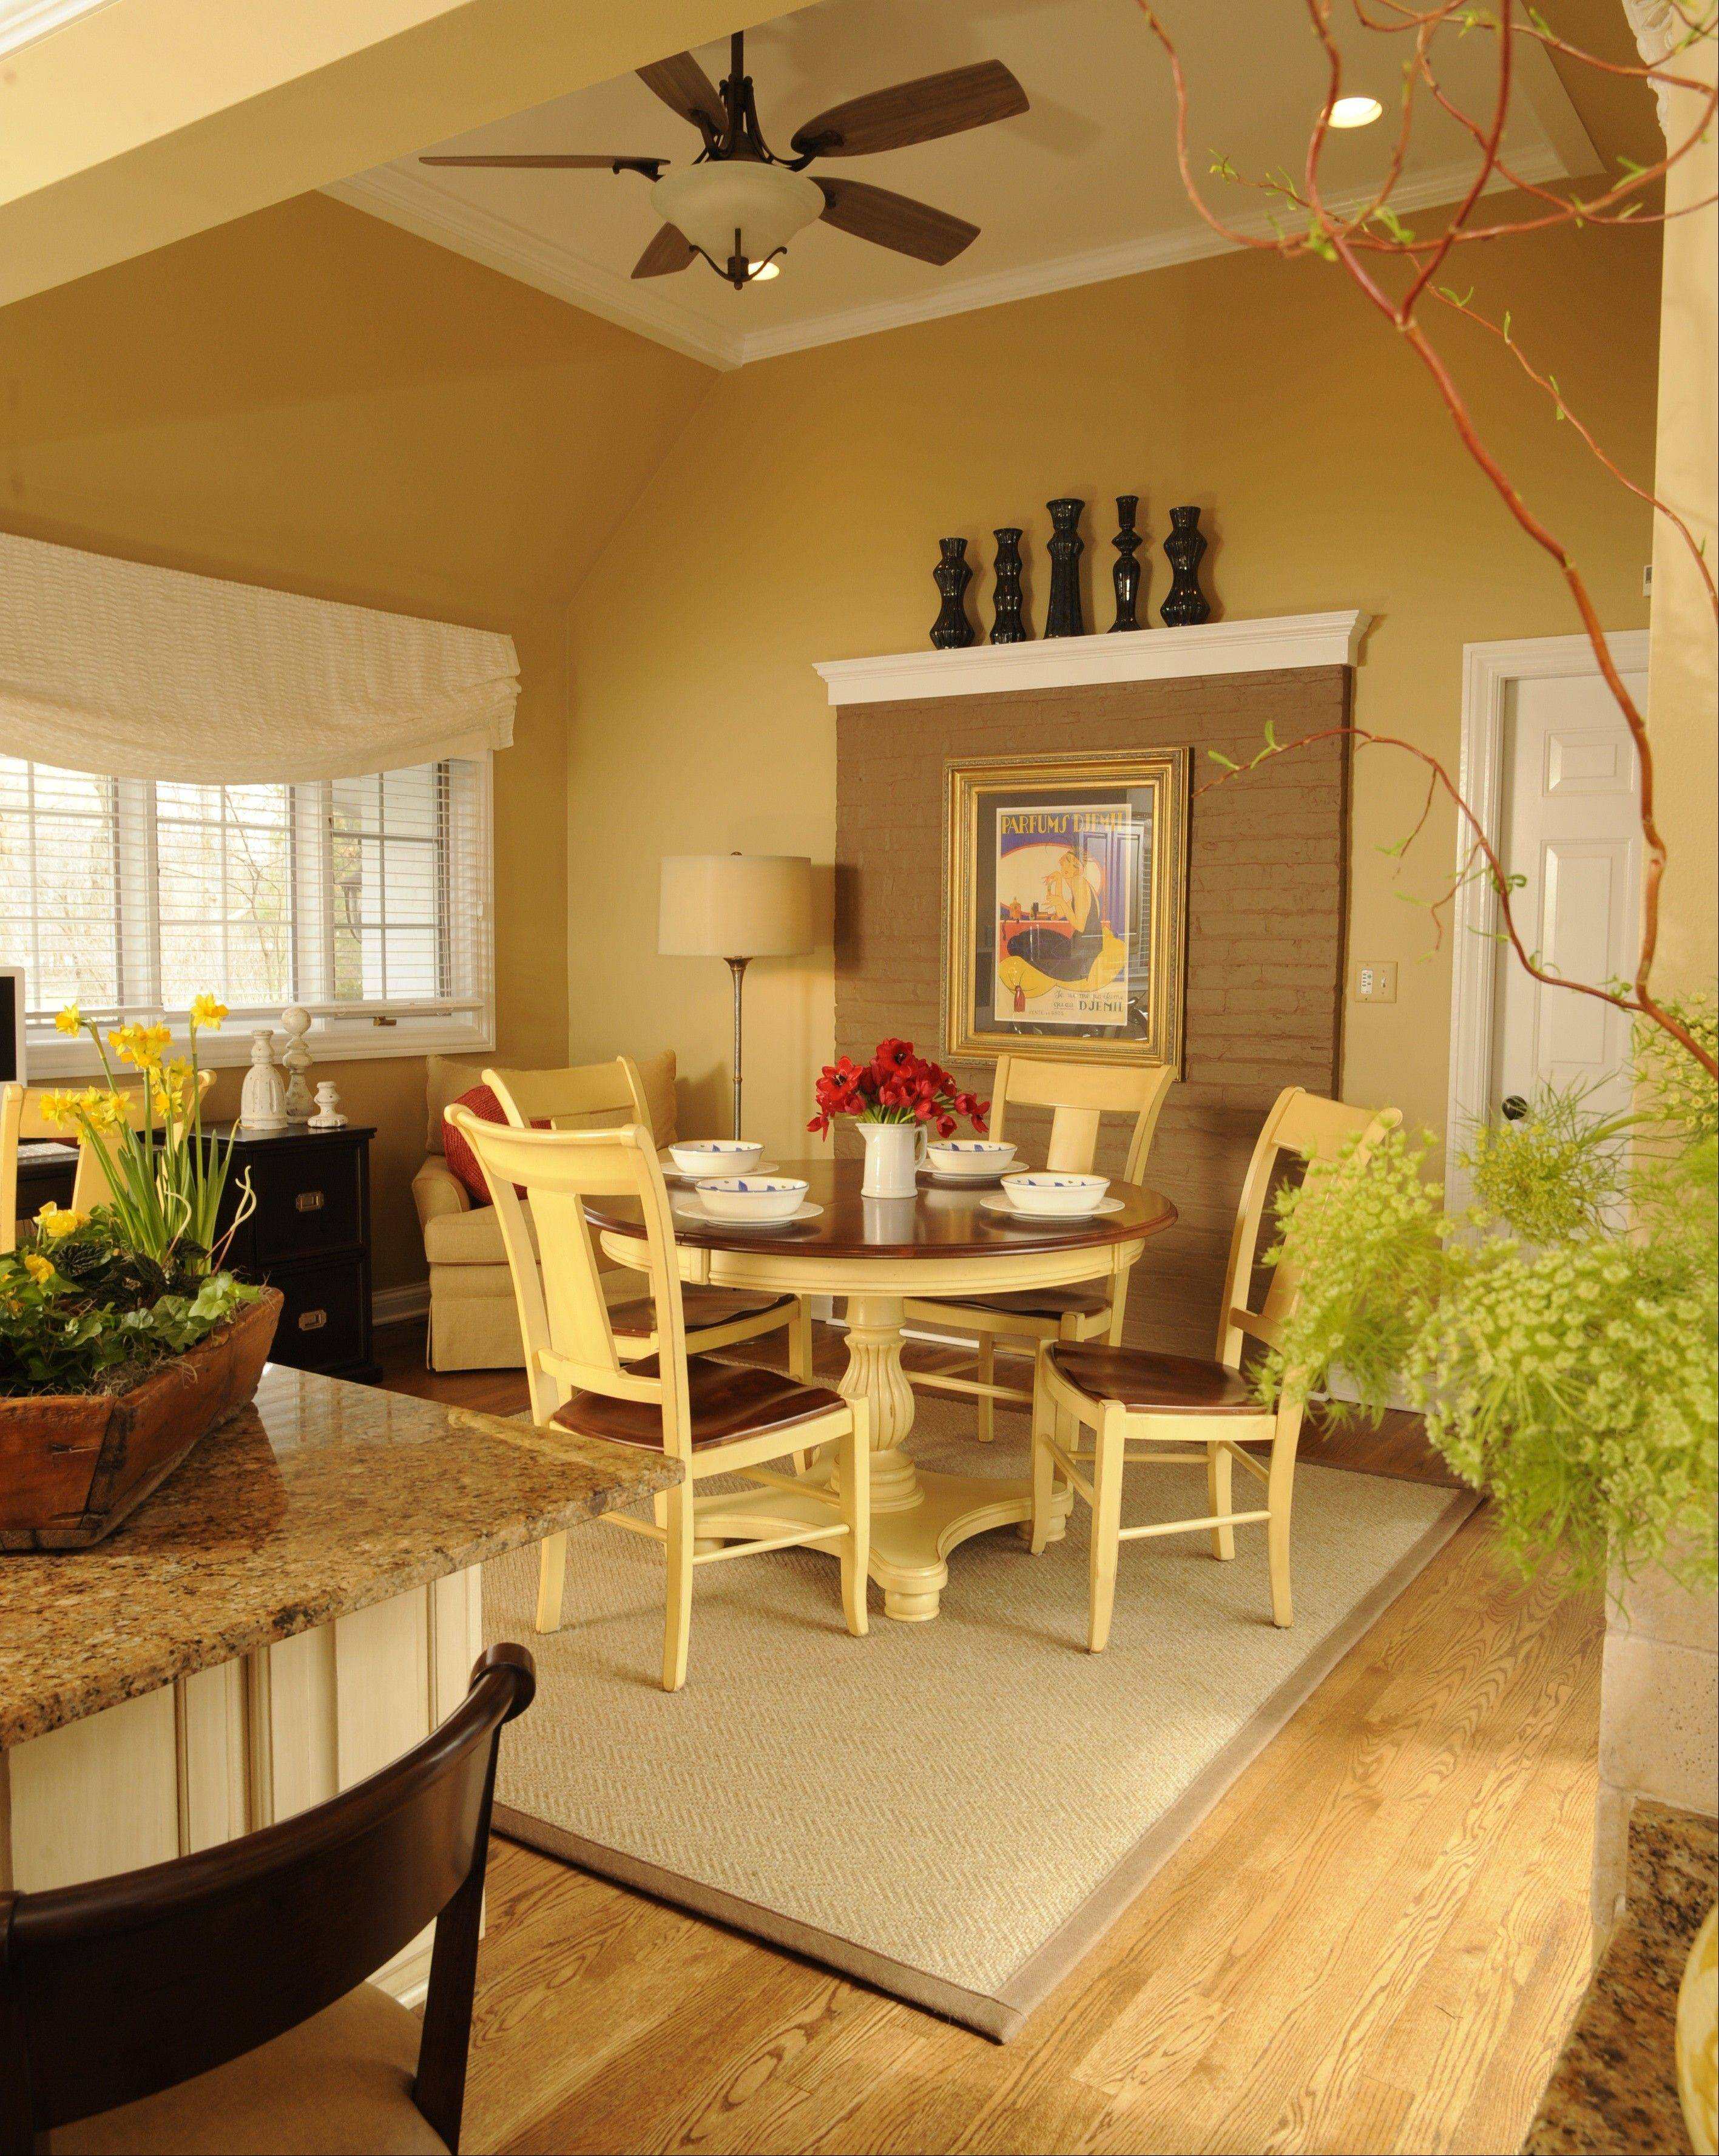 Susan Brunstrum of sweetpeasdesign updated this Libertyville kitchen.